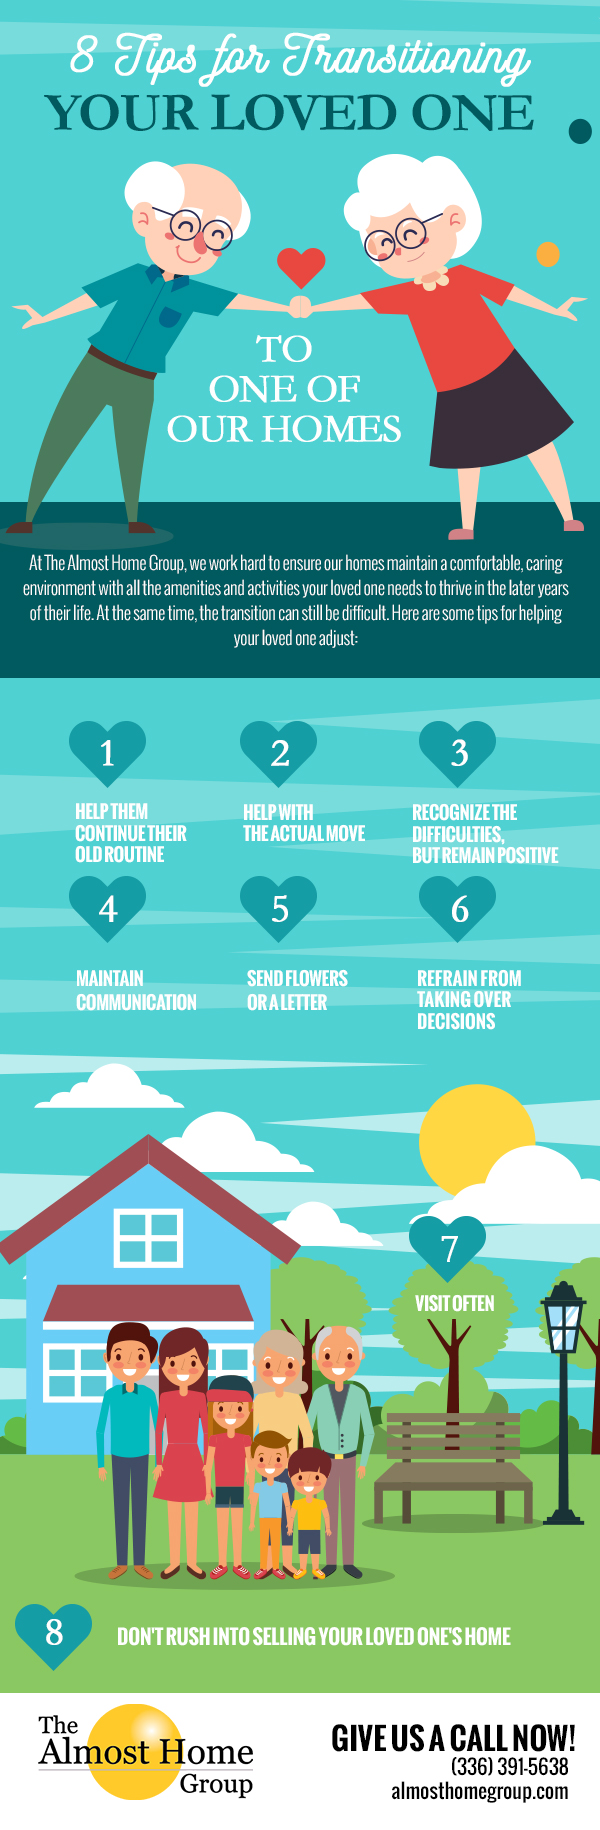 8 Tips for Transitioning Your Loved One to One of Our Homes [infographic]